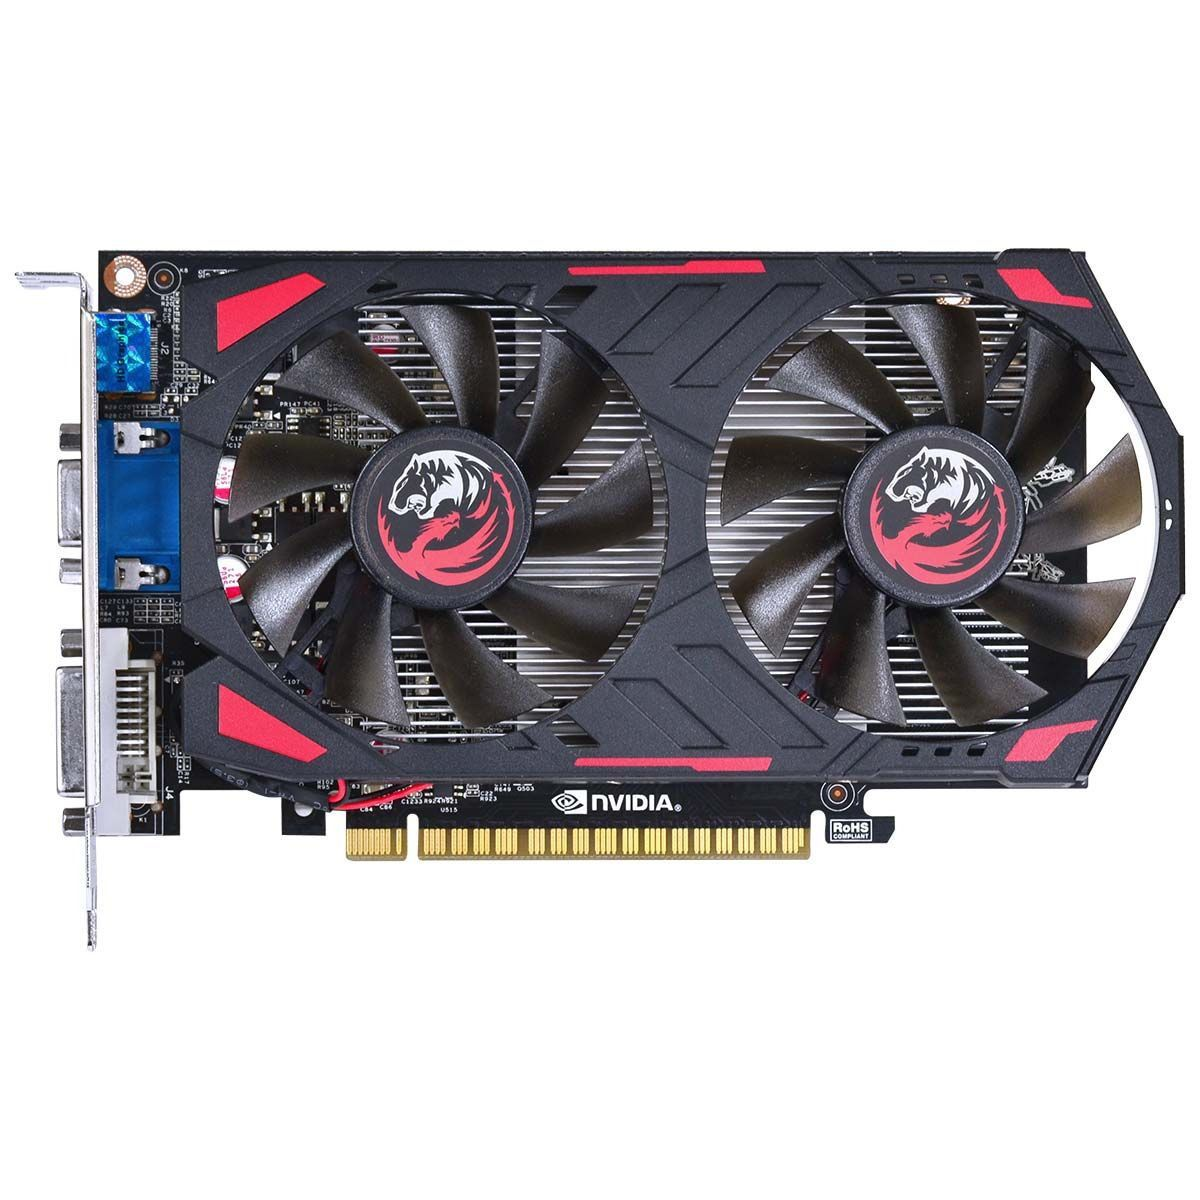 Placa de vídeo PCYes GTX 750TI 2GB - PPV750TI12802D5